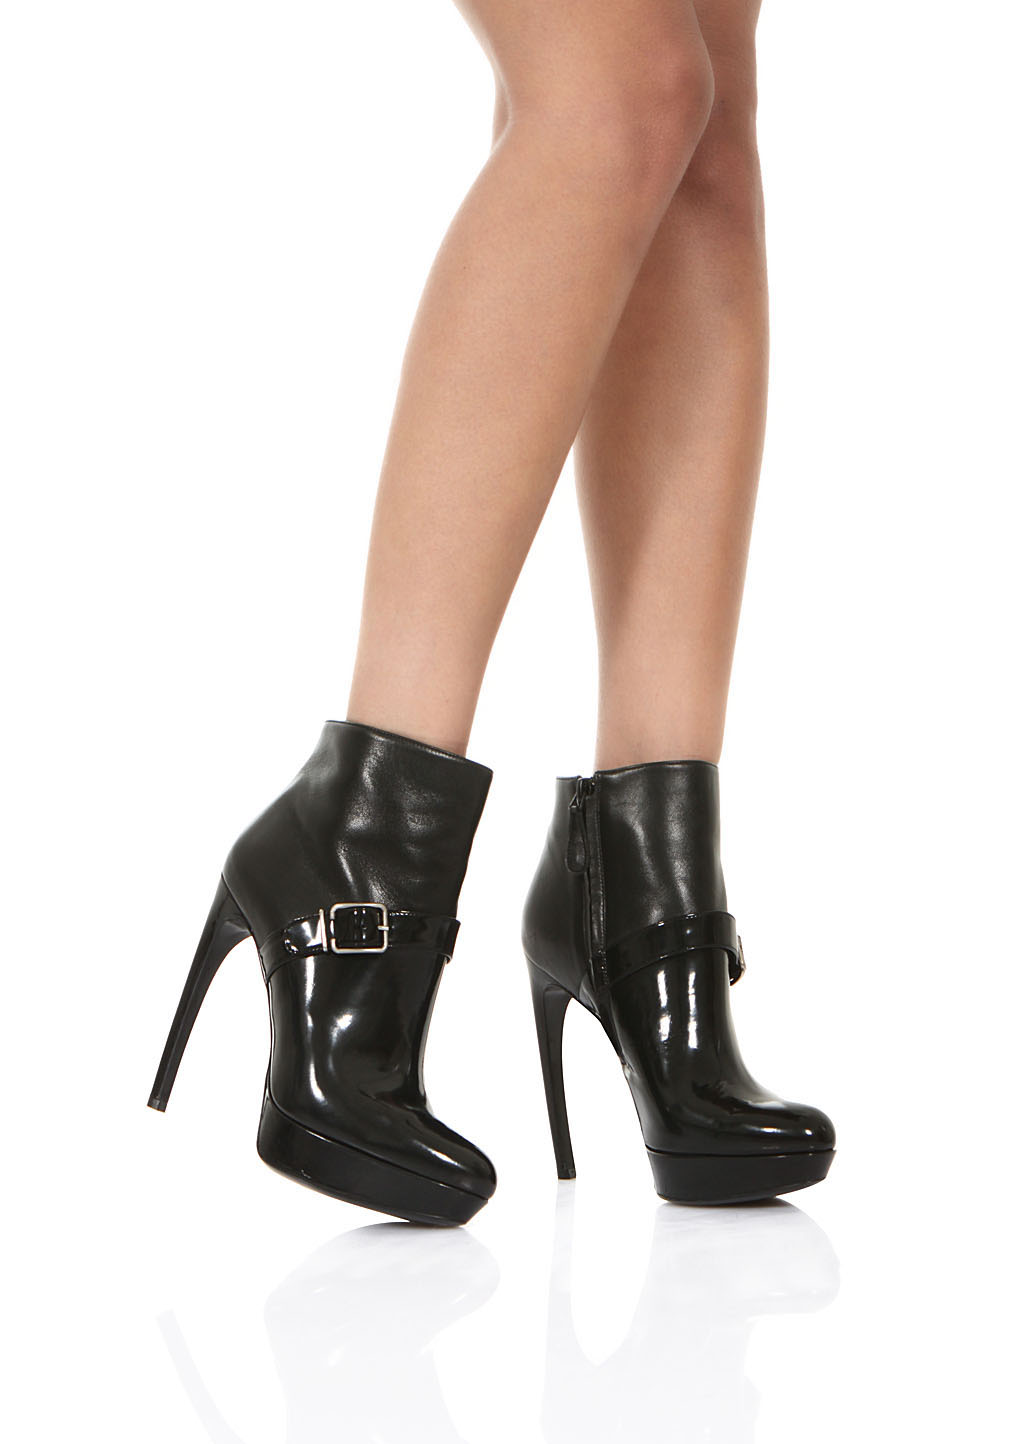 christian louboutin patent leather ankle boots